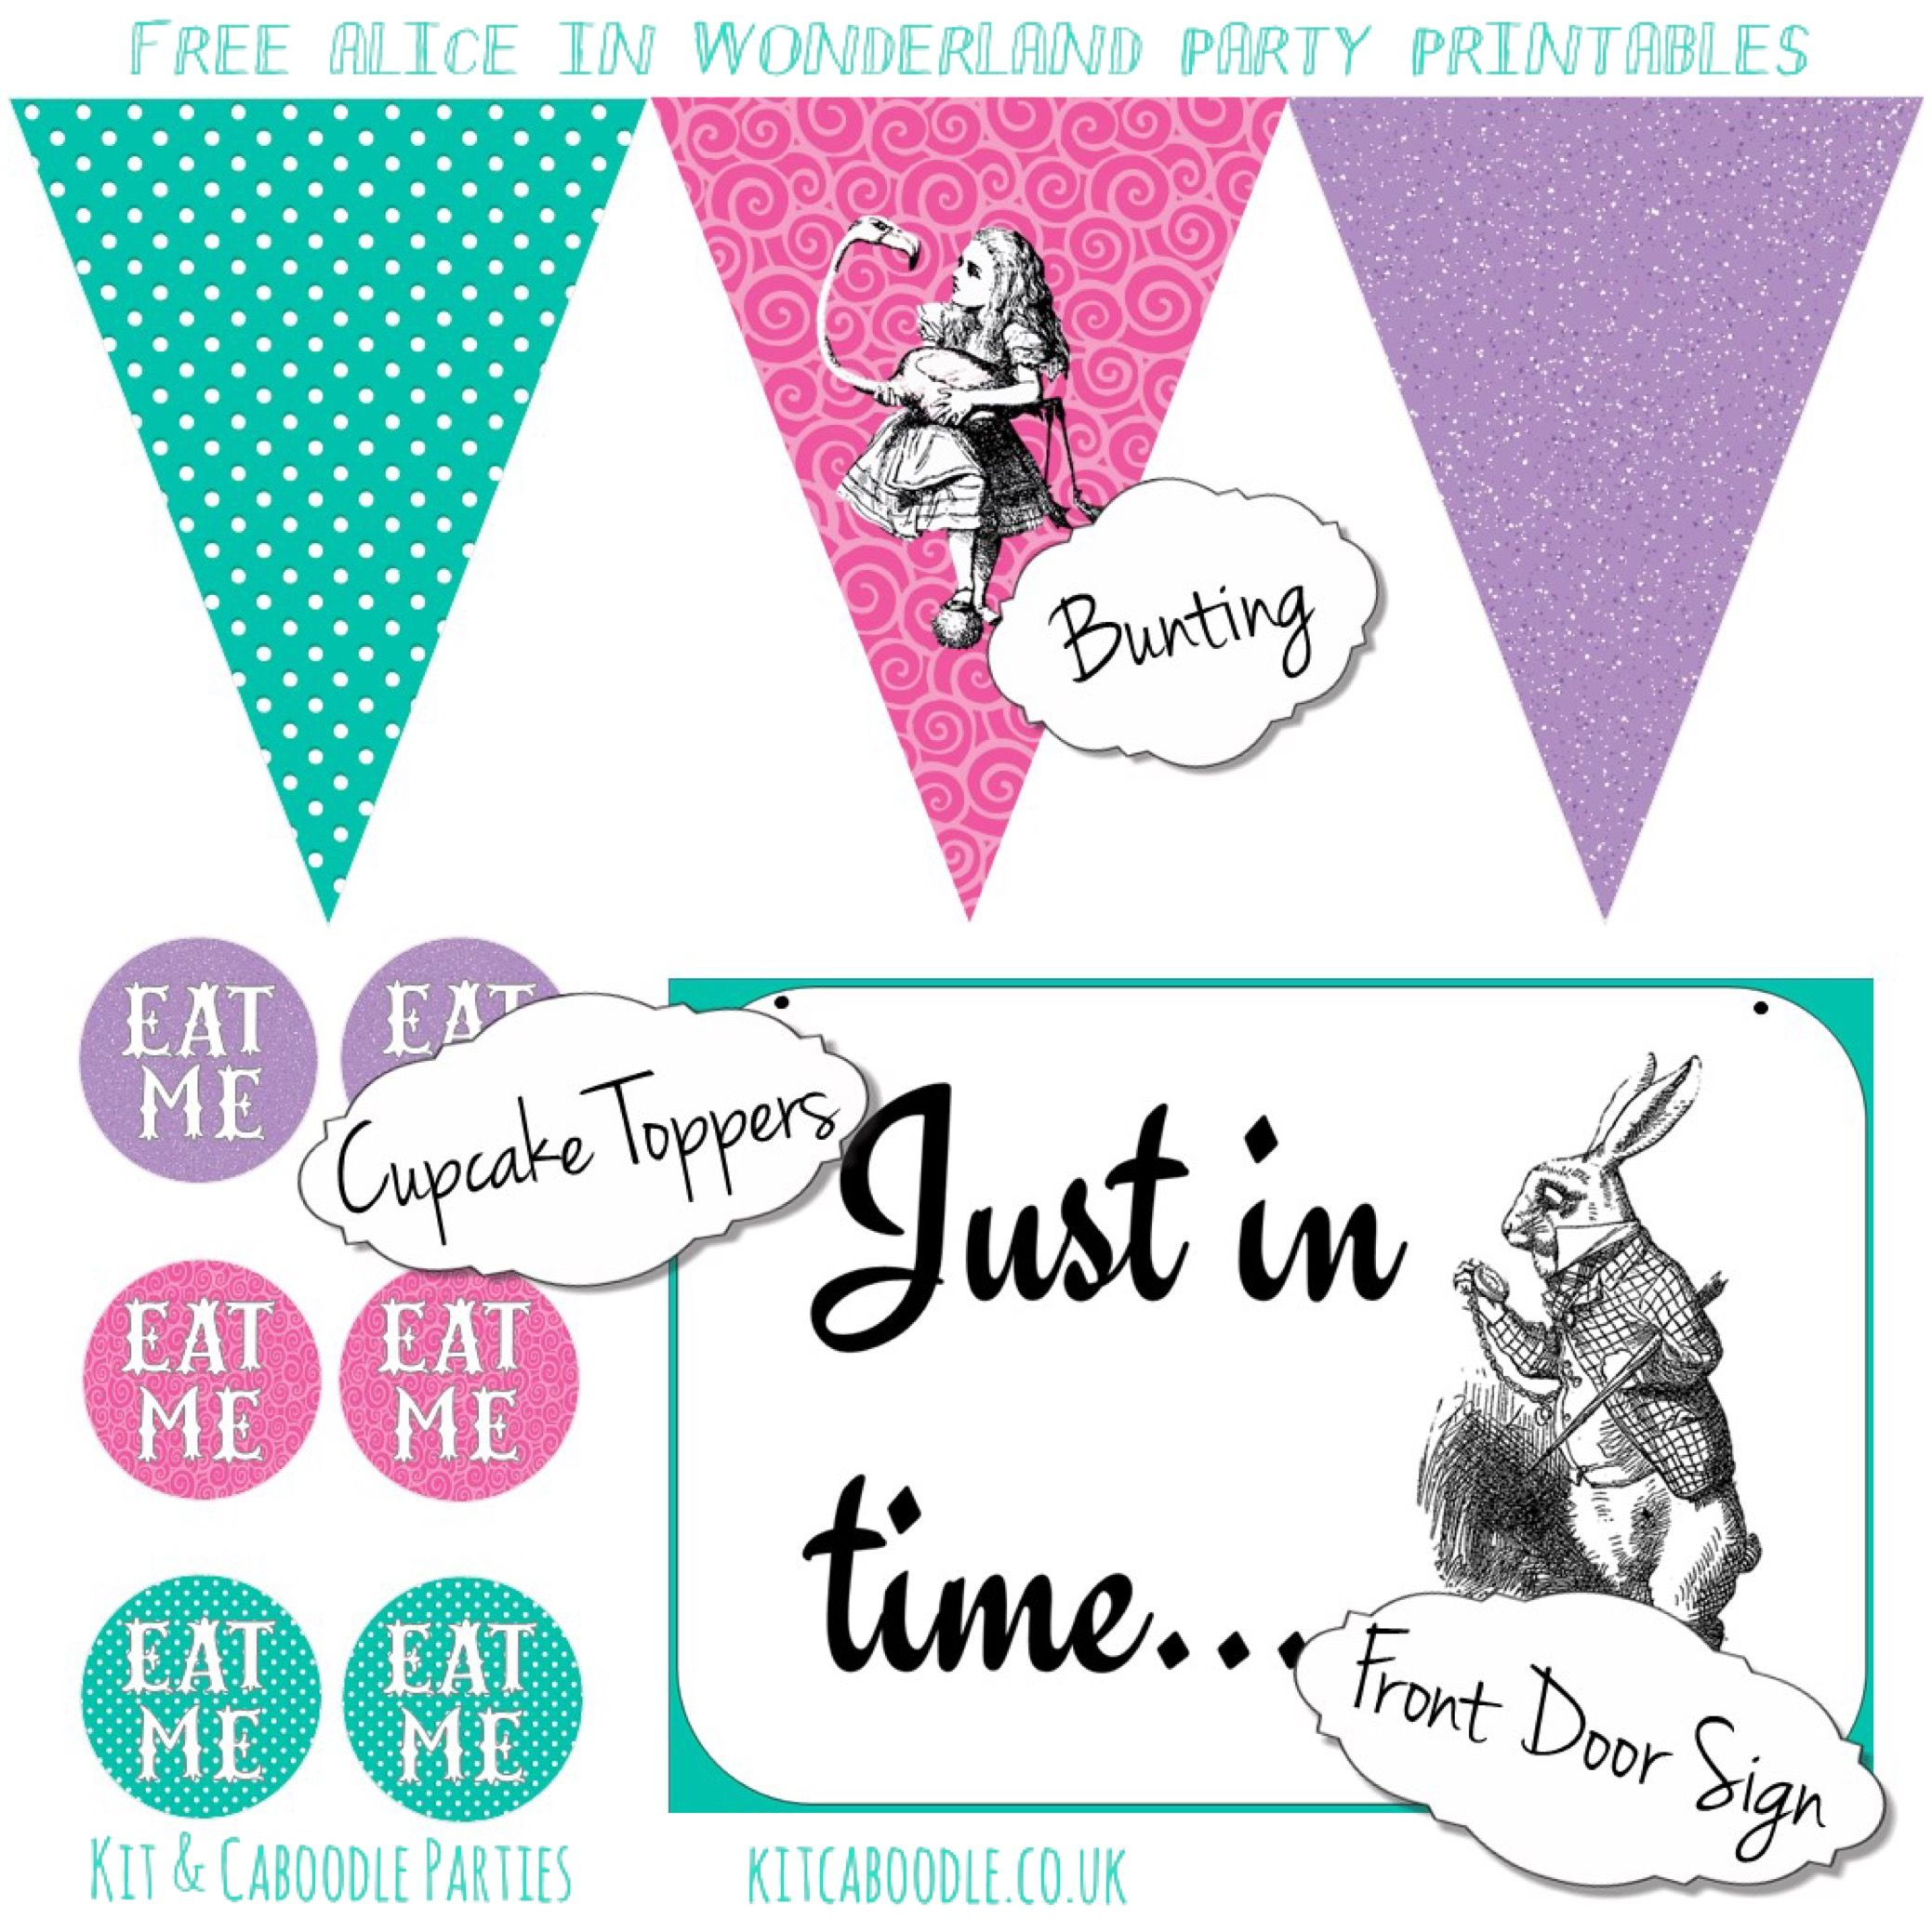 Kit Caboodle Kids Themed Party Kits And Party Supplies Wonderland Party Alice In Wonderland Party Wonderland Party Printables